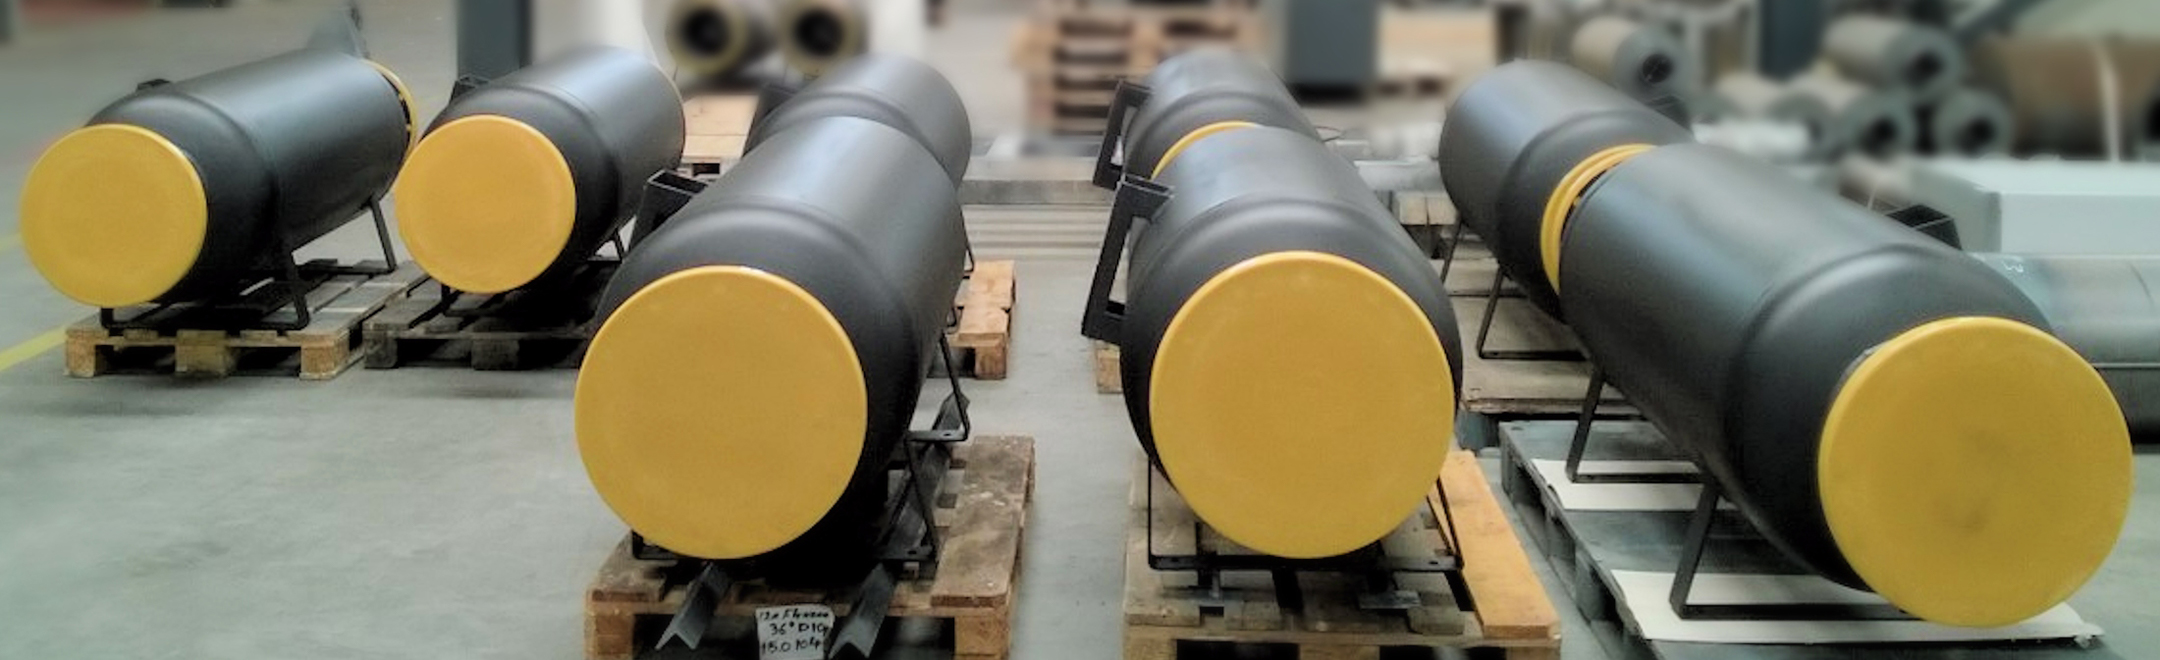 TIO BV Products - Pressure vessels